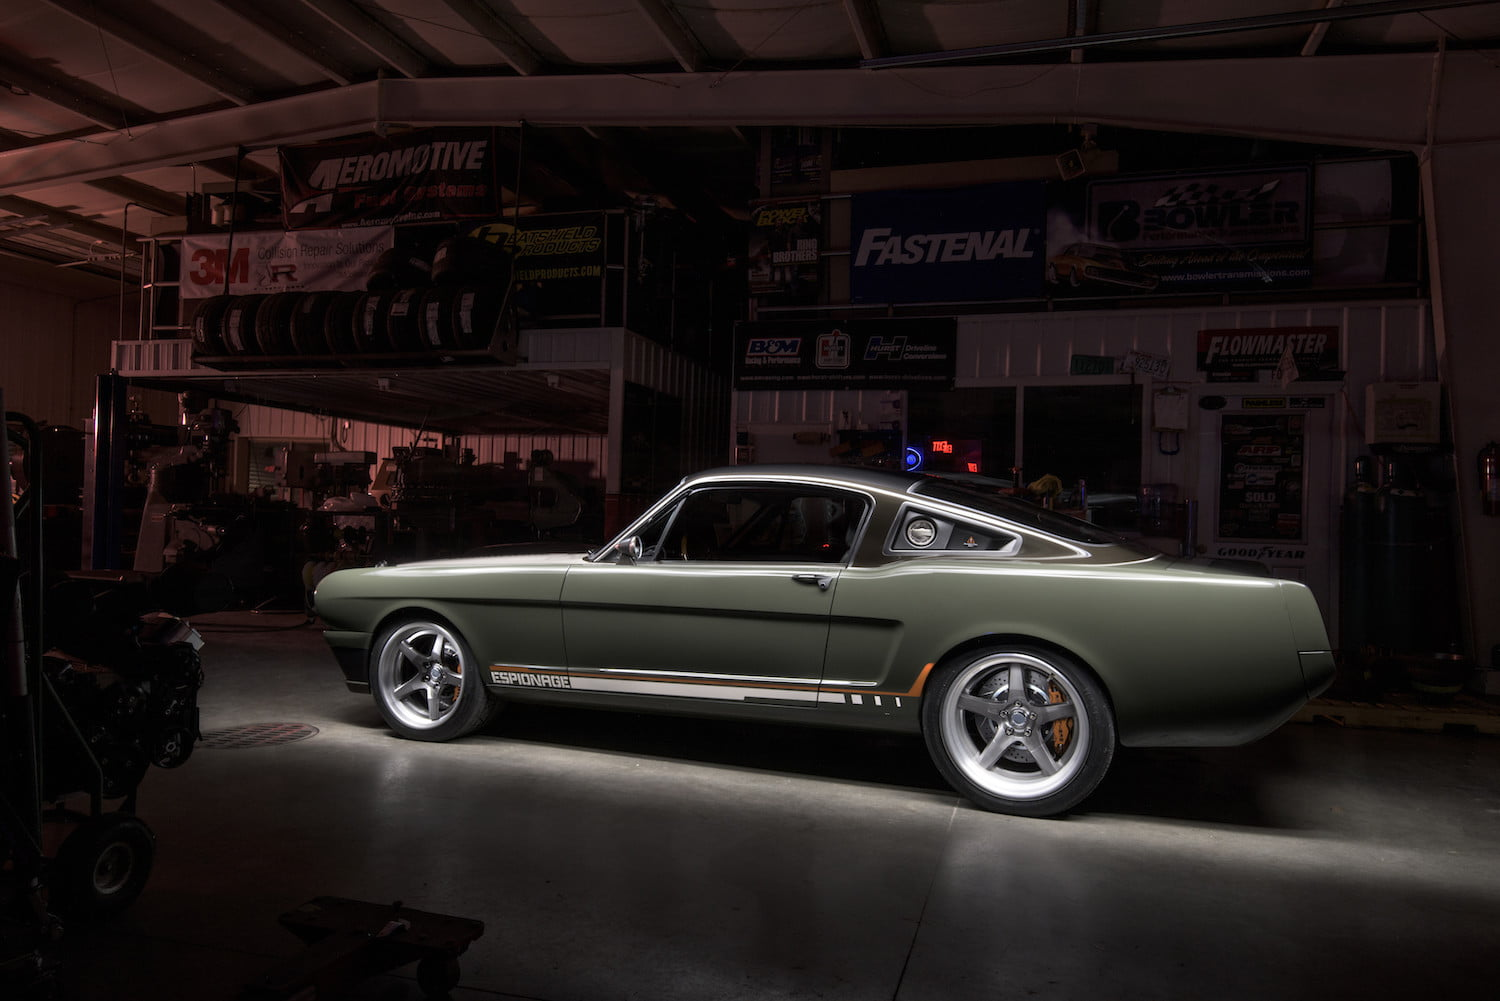 012_RB Espionage Mustang